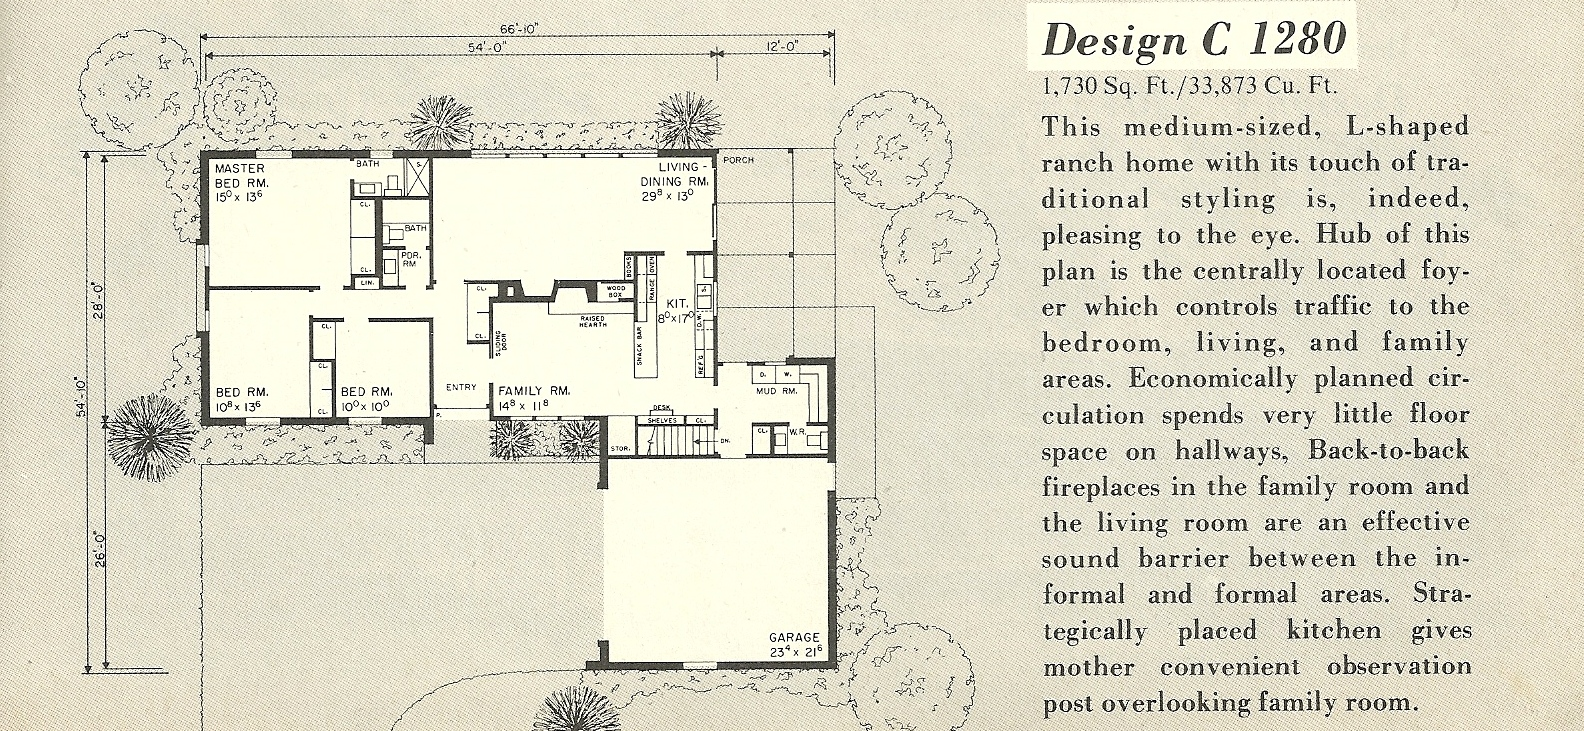 Vintage House Plans 1280a Antique Alter Ego